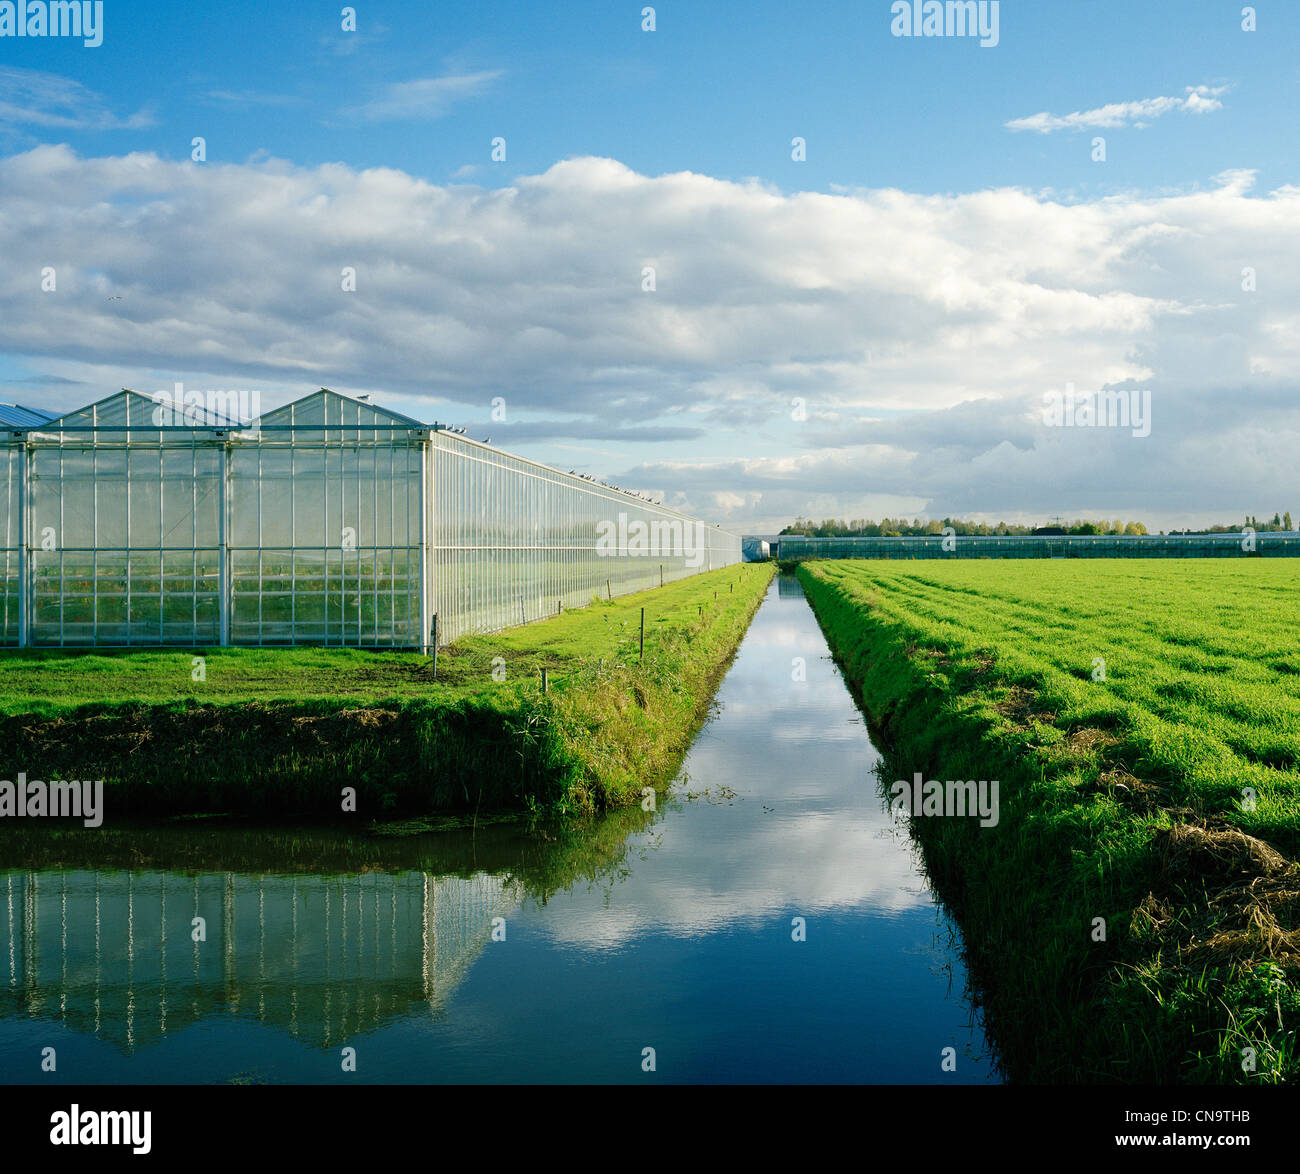 Greenhouses and irrigated river in field - Stock Image